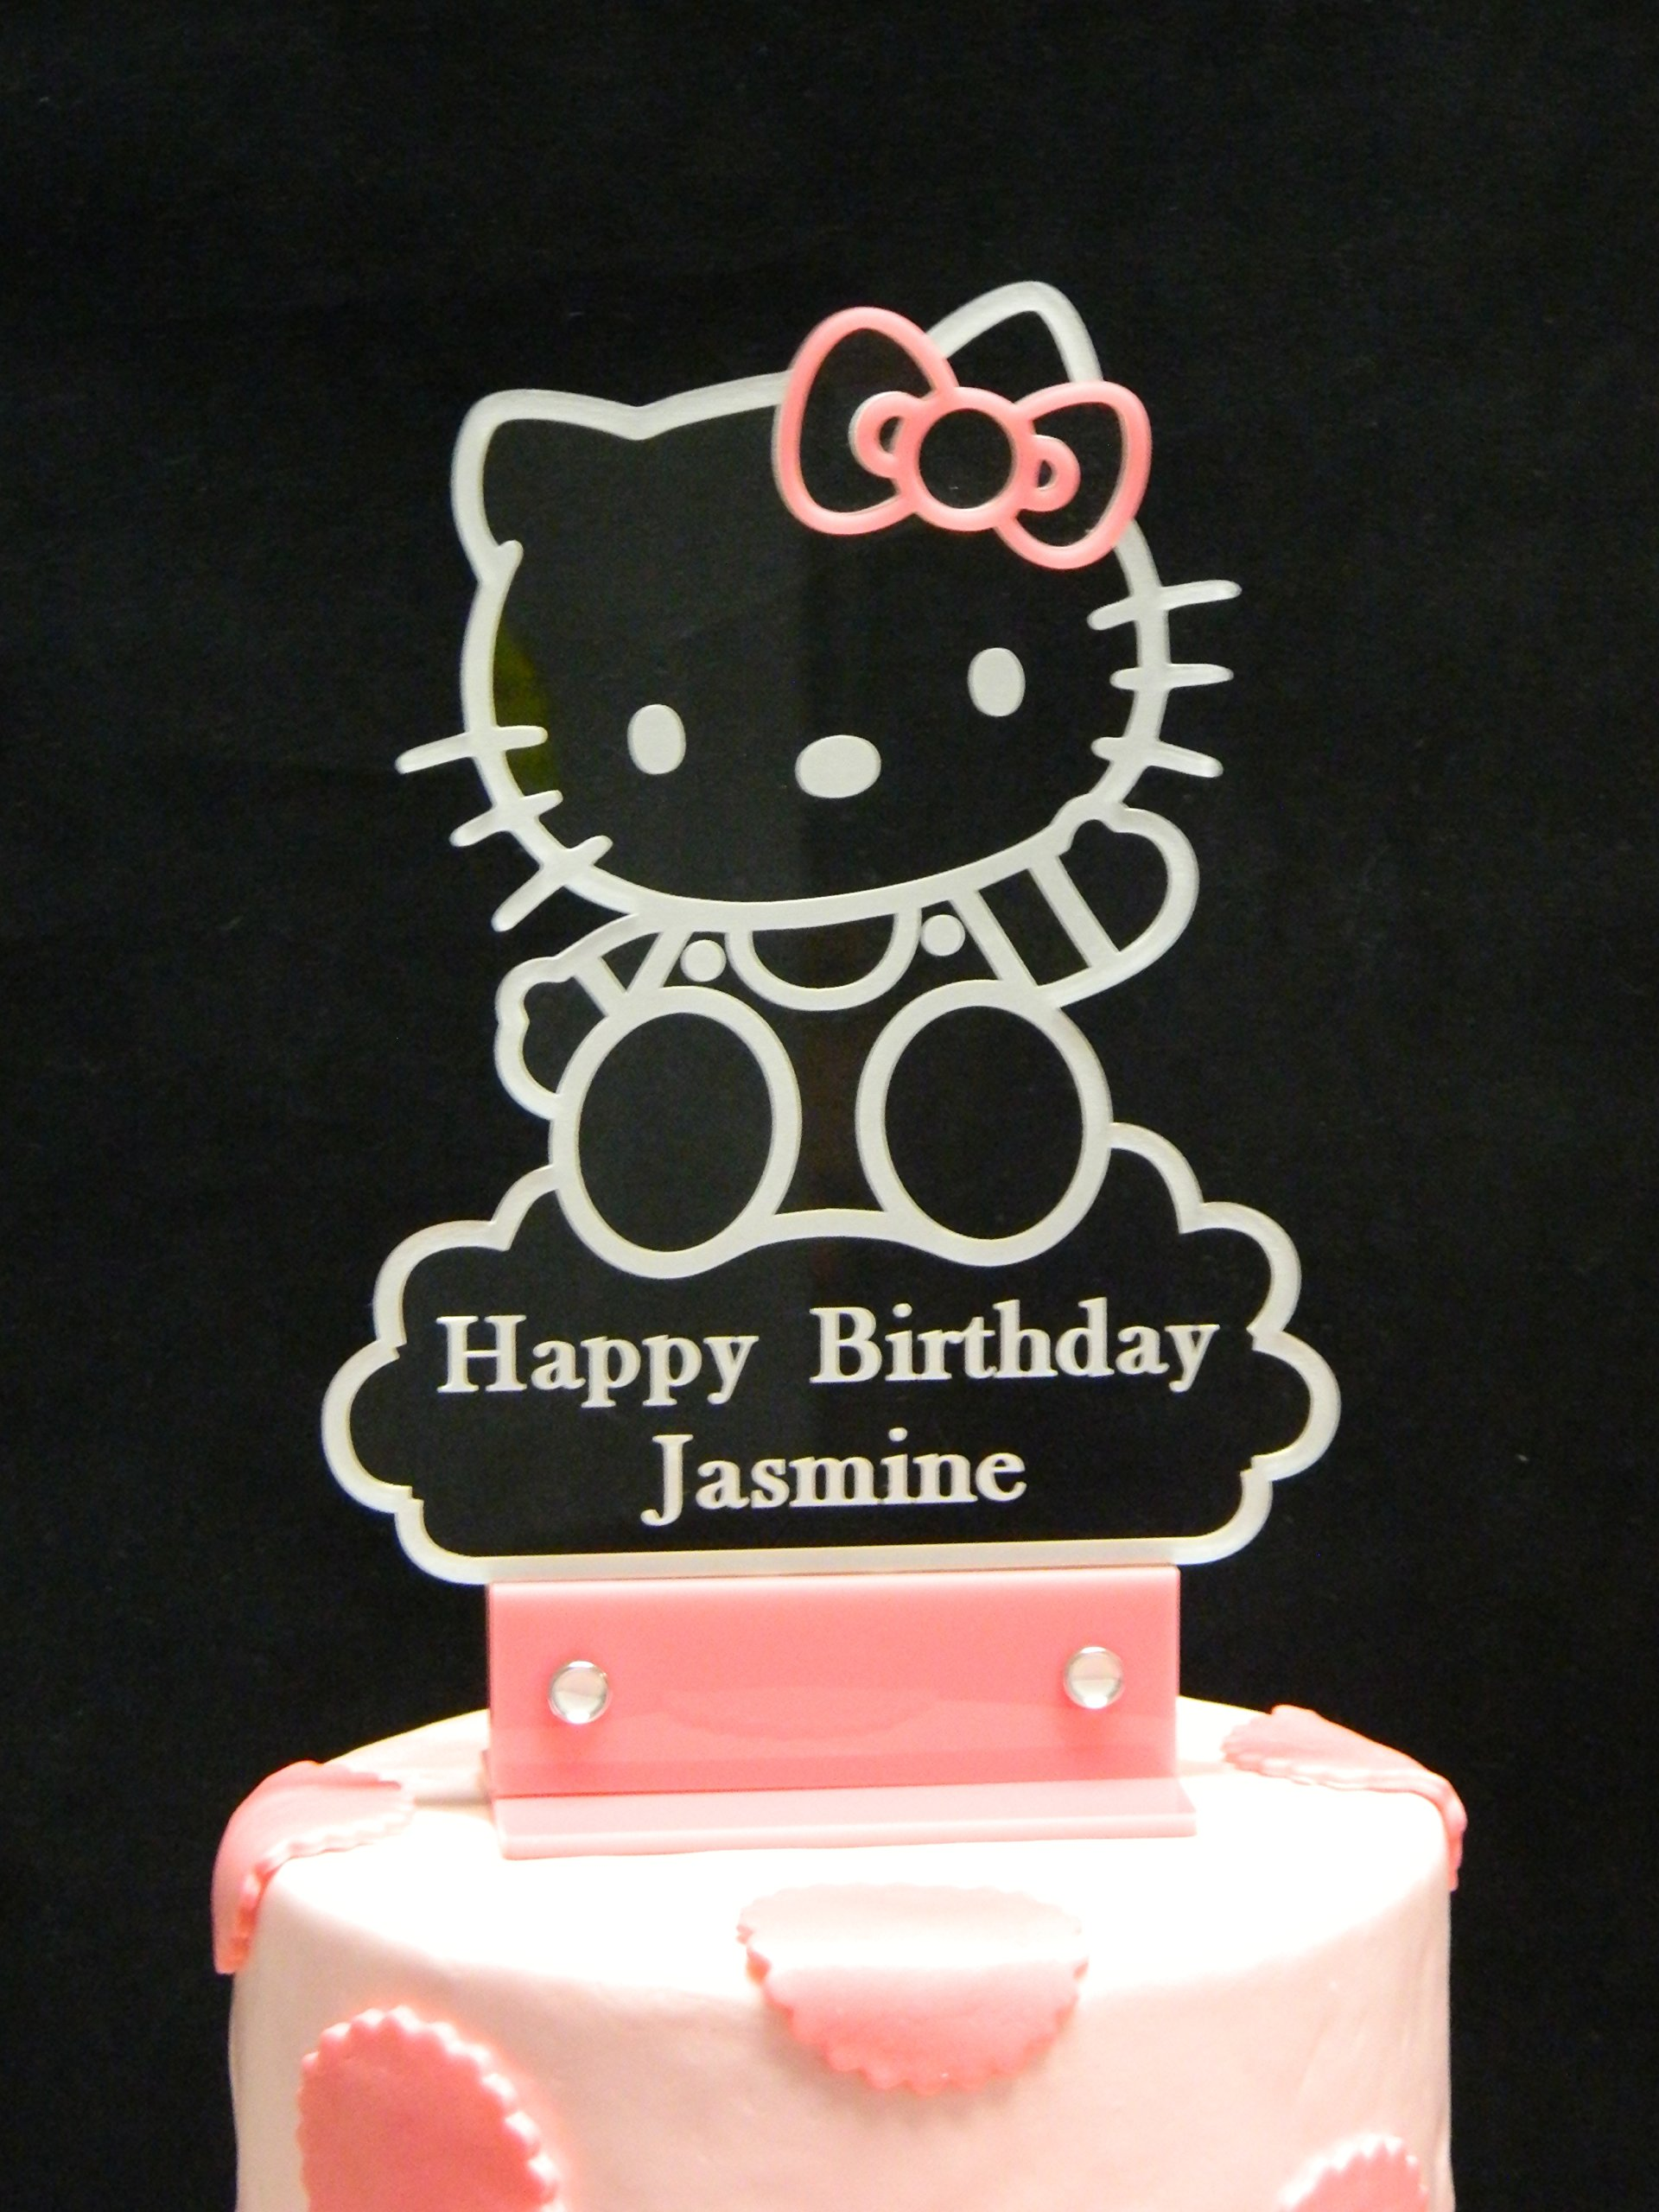 Personalized Hello Kitty Inspired Cake Topper, Personalized in Acrylic and LED Light.